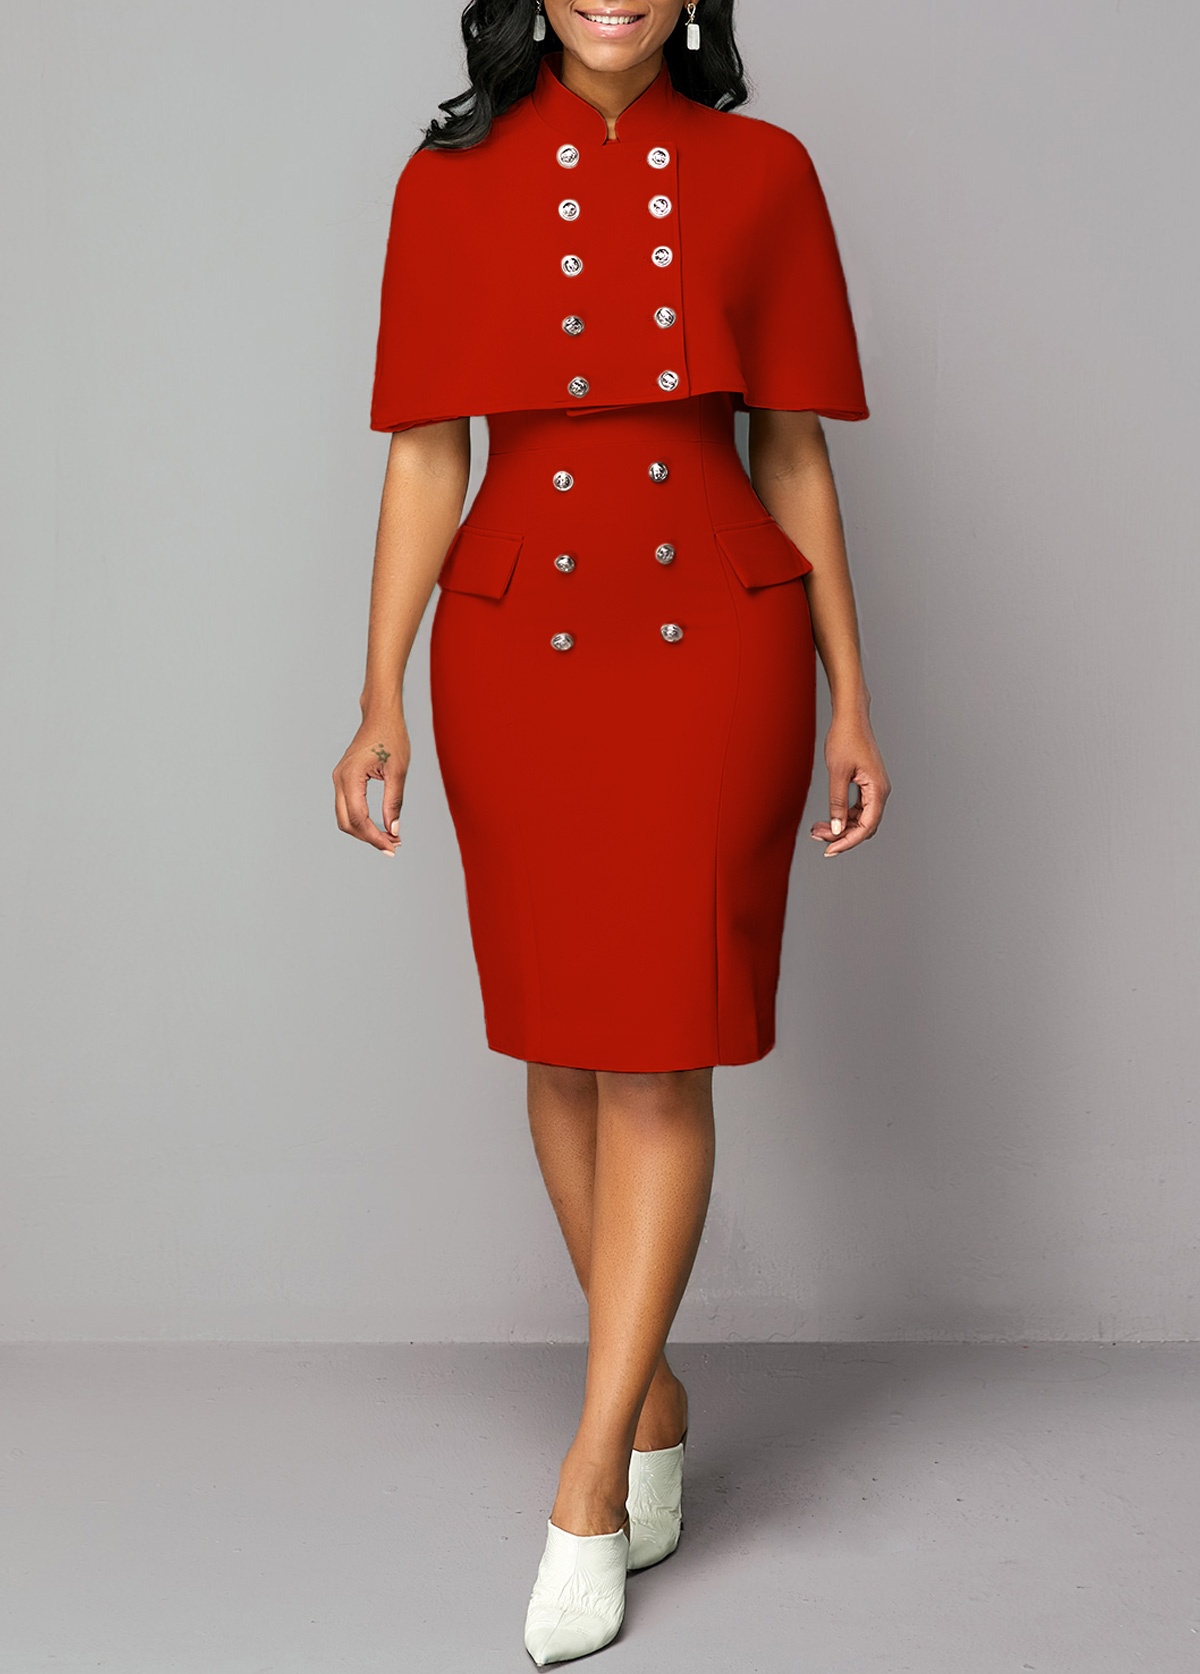 Cape Shoulder Button Detail Top and Sheath Dress